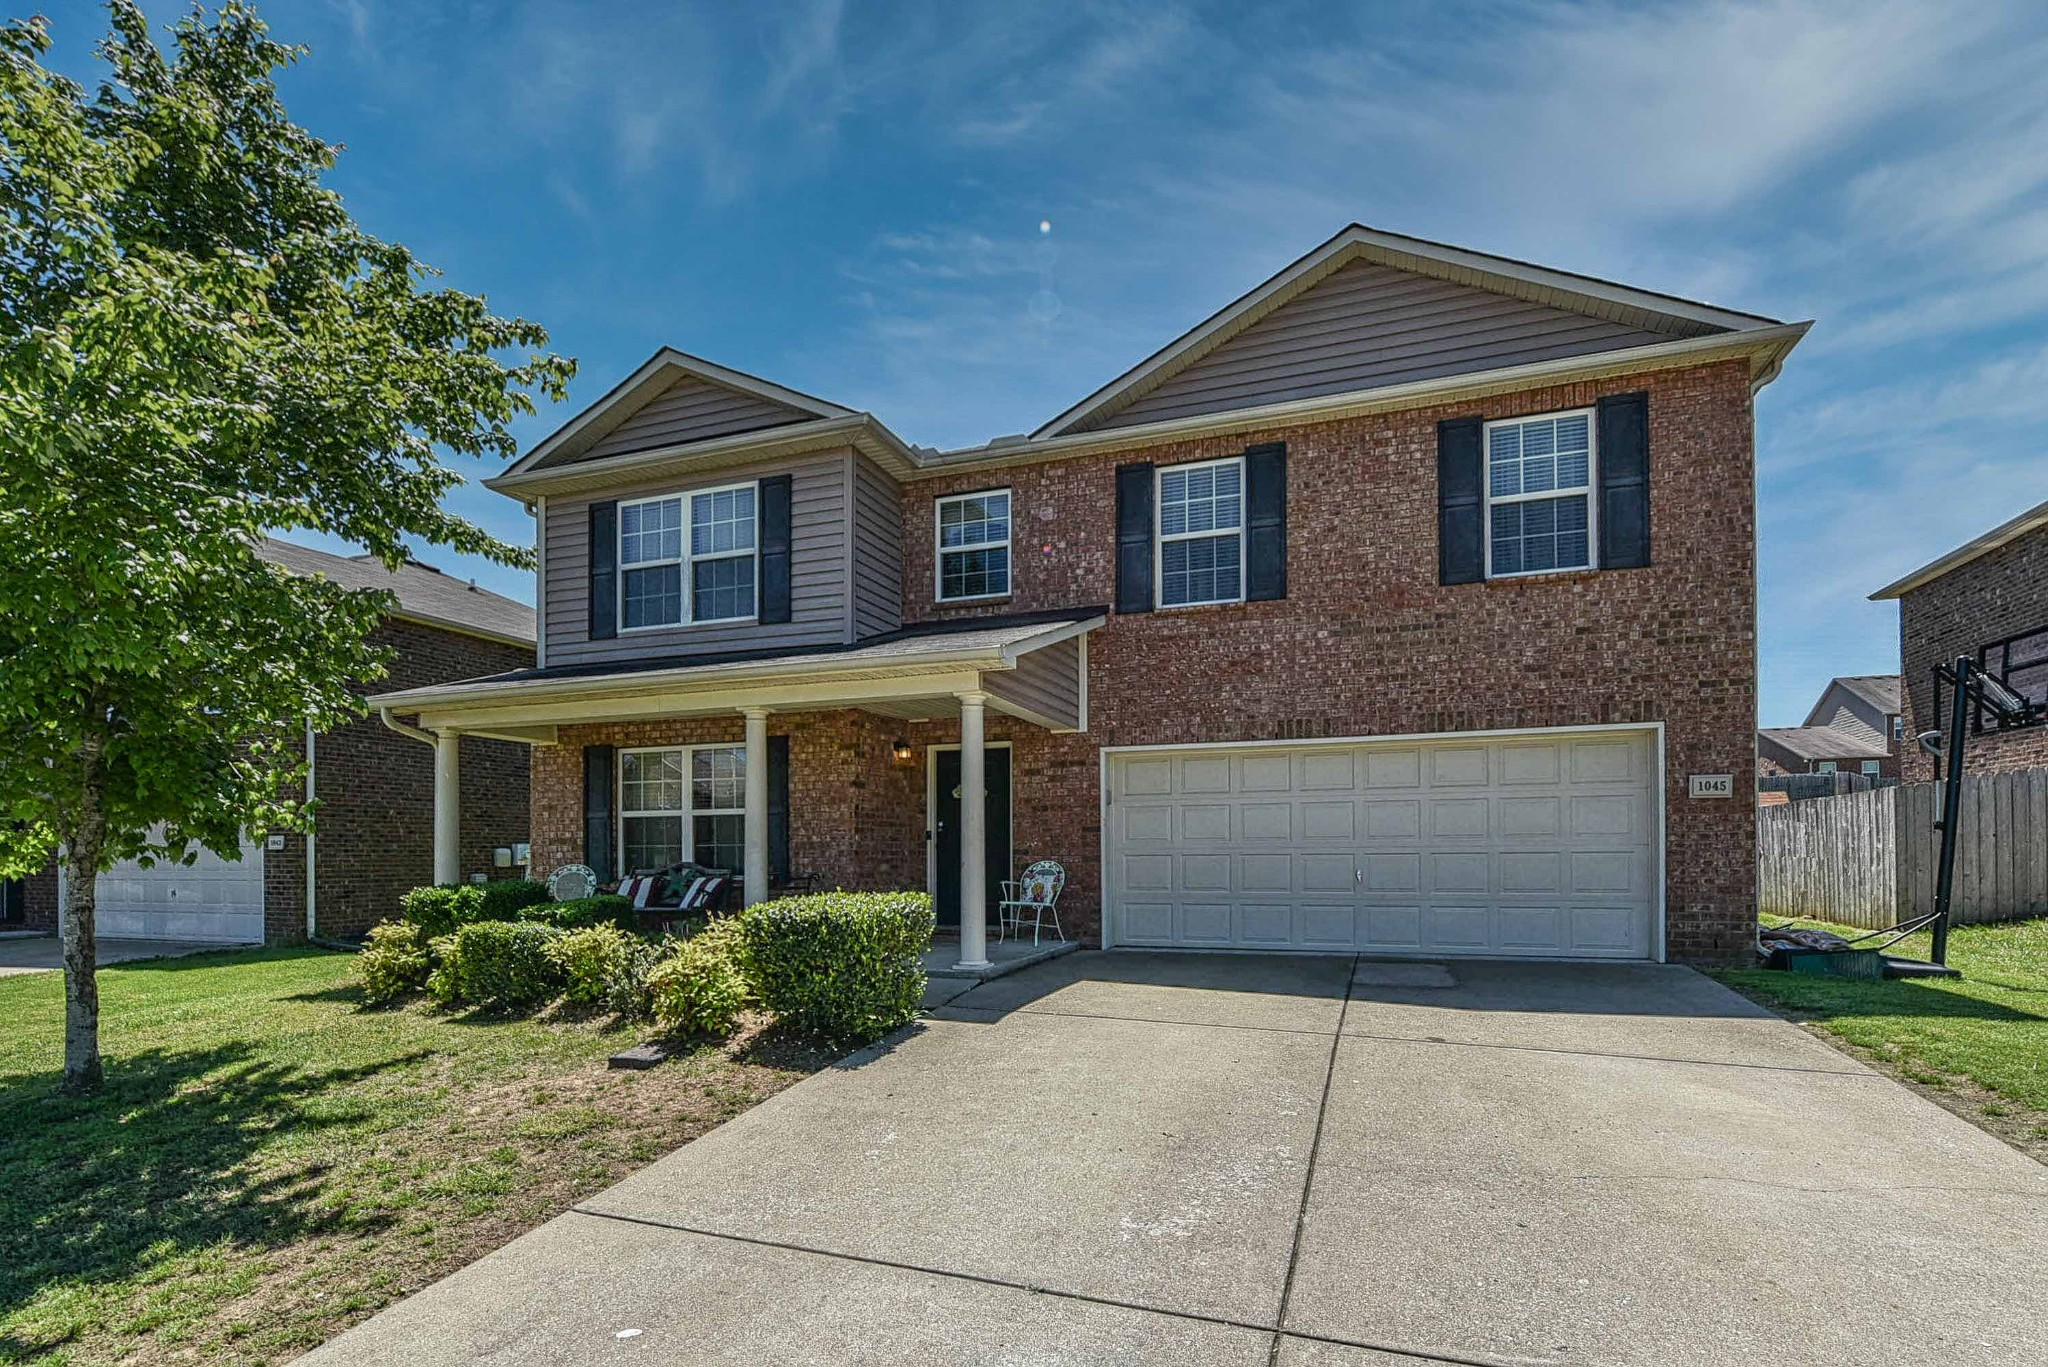 All bedrooms up, large owner suite, 19x16, walk in closets in all BR. New HVAC, new Kitchen Aid dishwasher, newer range & water heater. Large, level, fenced yard. Amazing community w/pool & clubhouse. Convenient location, desirable schools. Showings Fri 5-14 thru Sun 5-16. Offers due 1:00 pm 5-17.